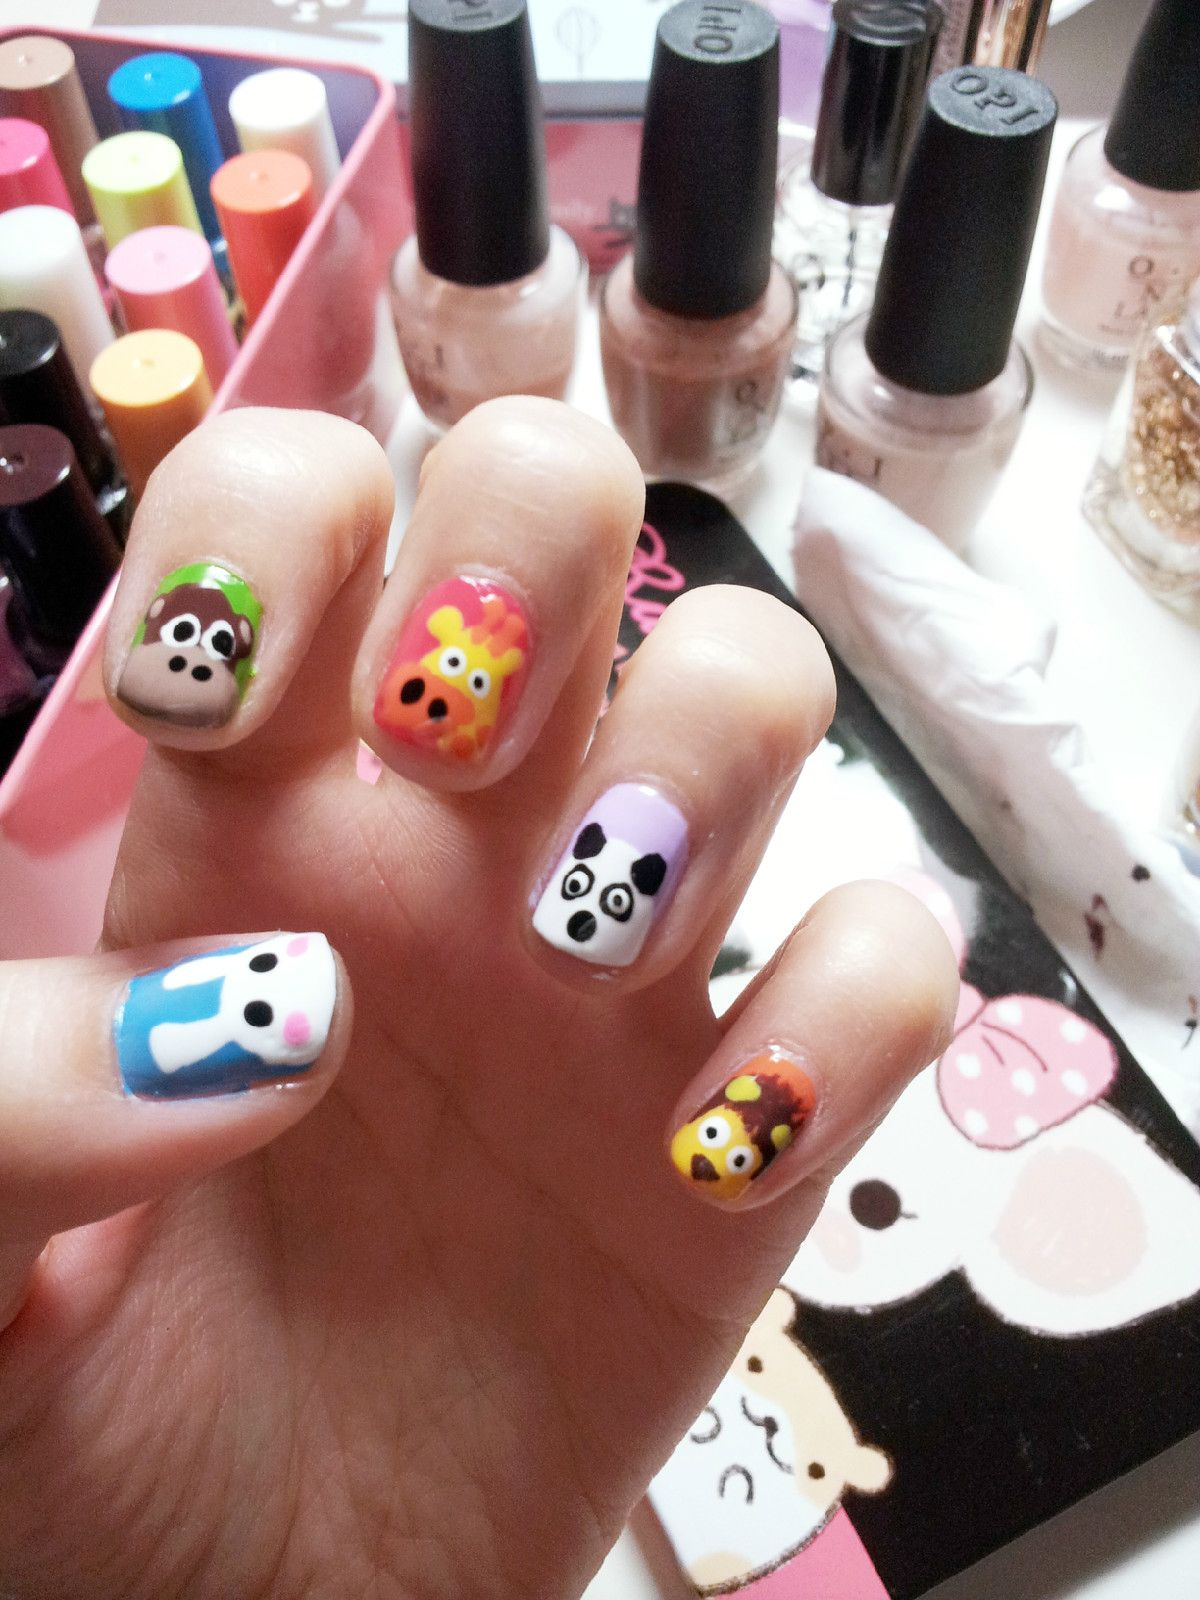 Kids Nails - http://nail-designs.com/varnish/kids-nails/ | Nail ...